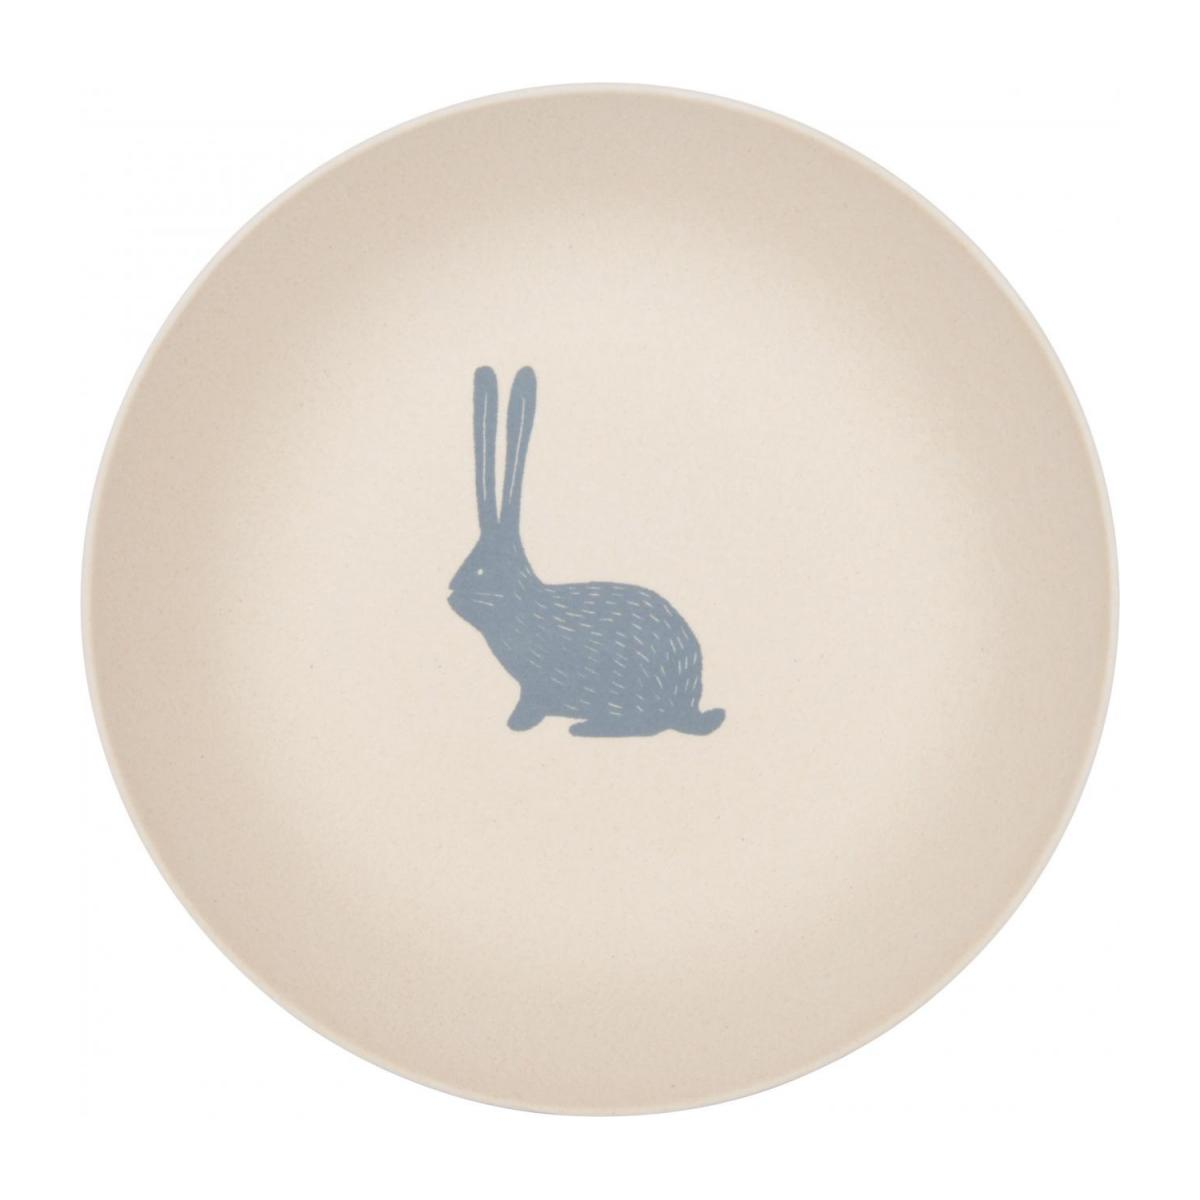 Soup plate with bunny patterns n°1